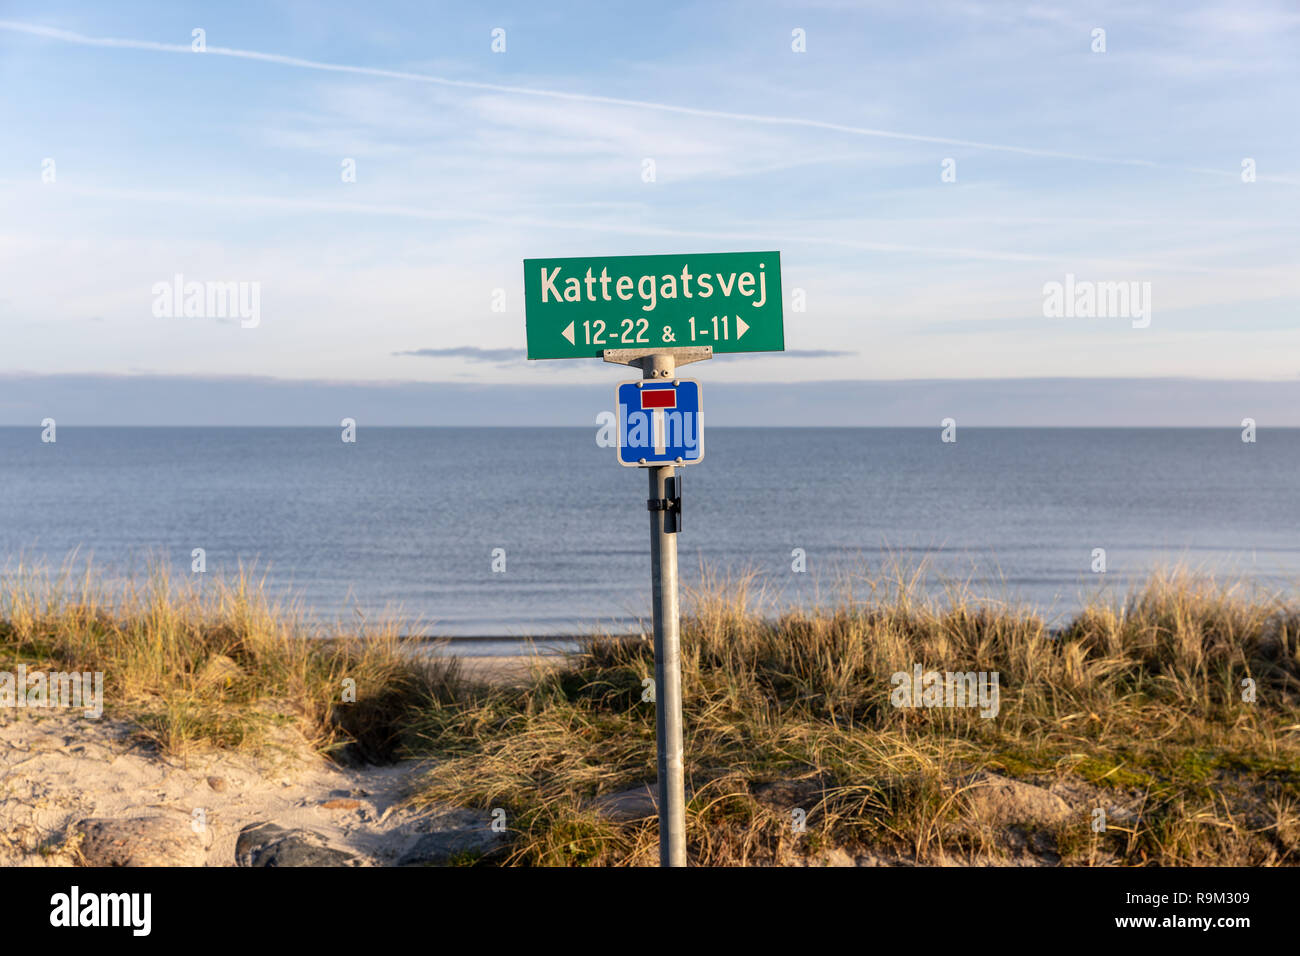 Kattegatsvej, street name sign by the beach, with the sea (Kattegat) in the background; Saeby, Denmark - Stock Image